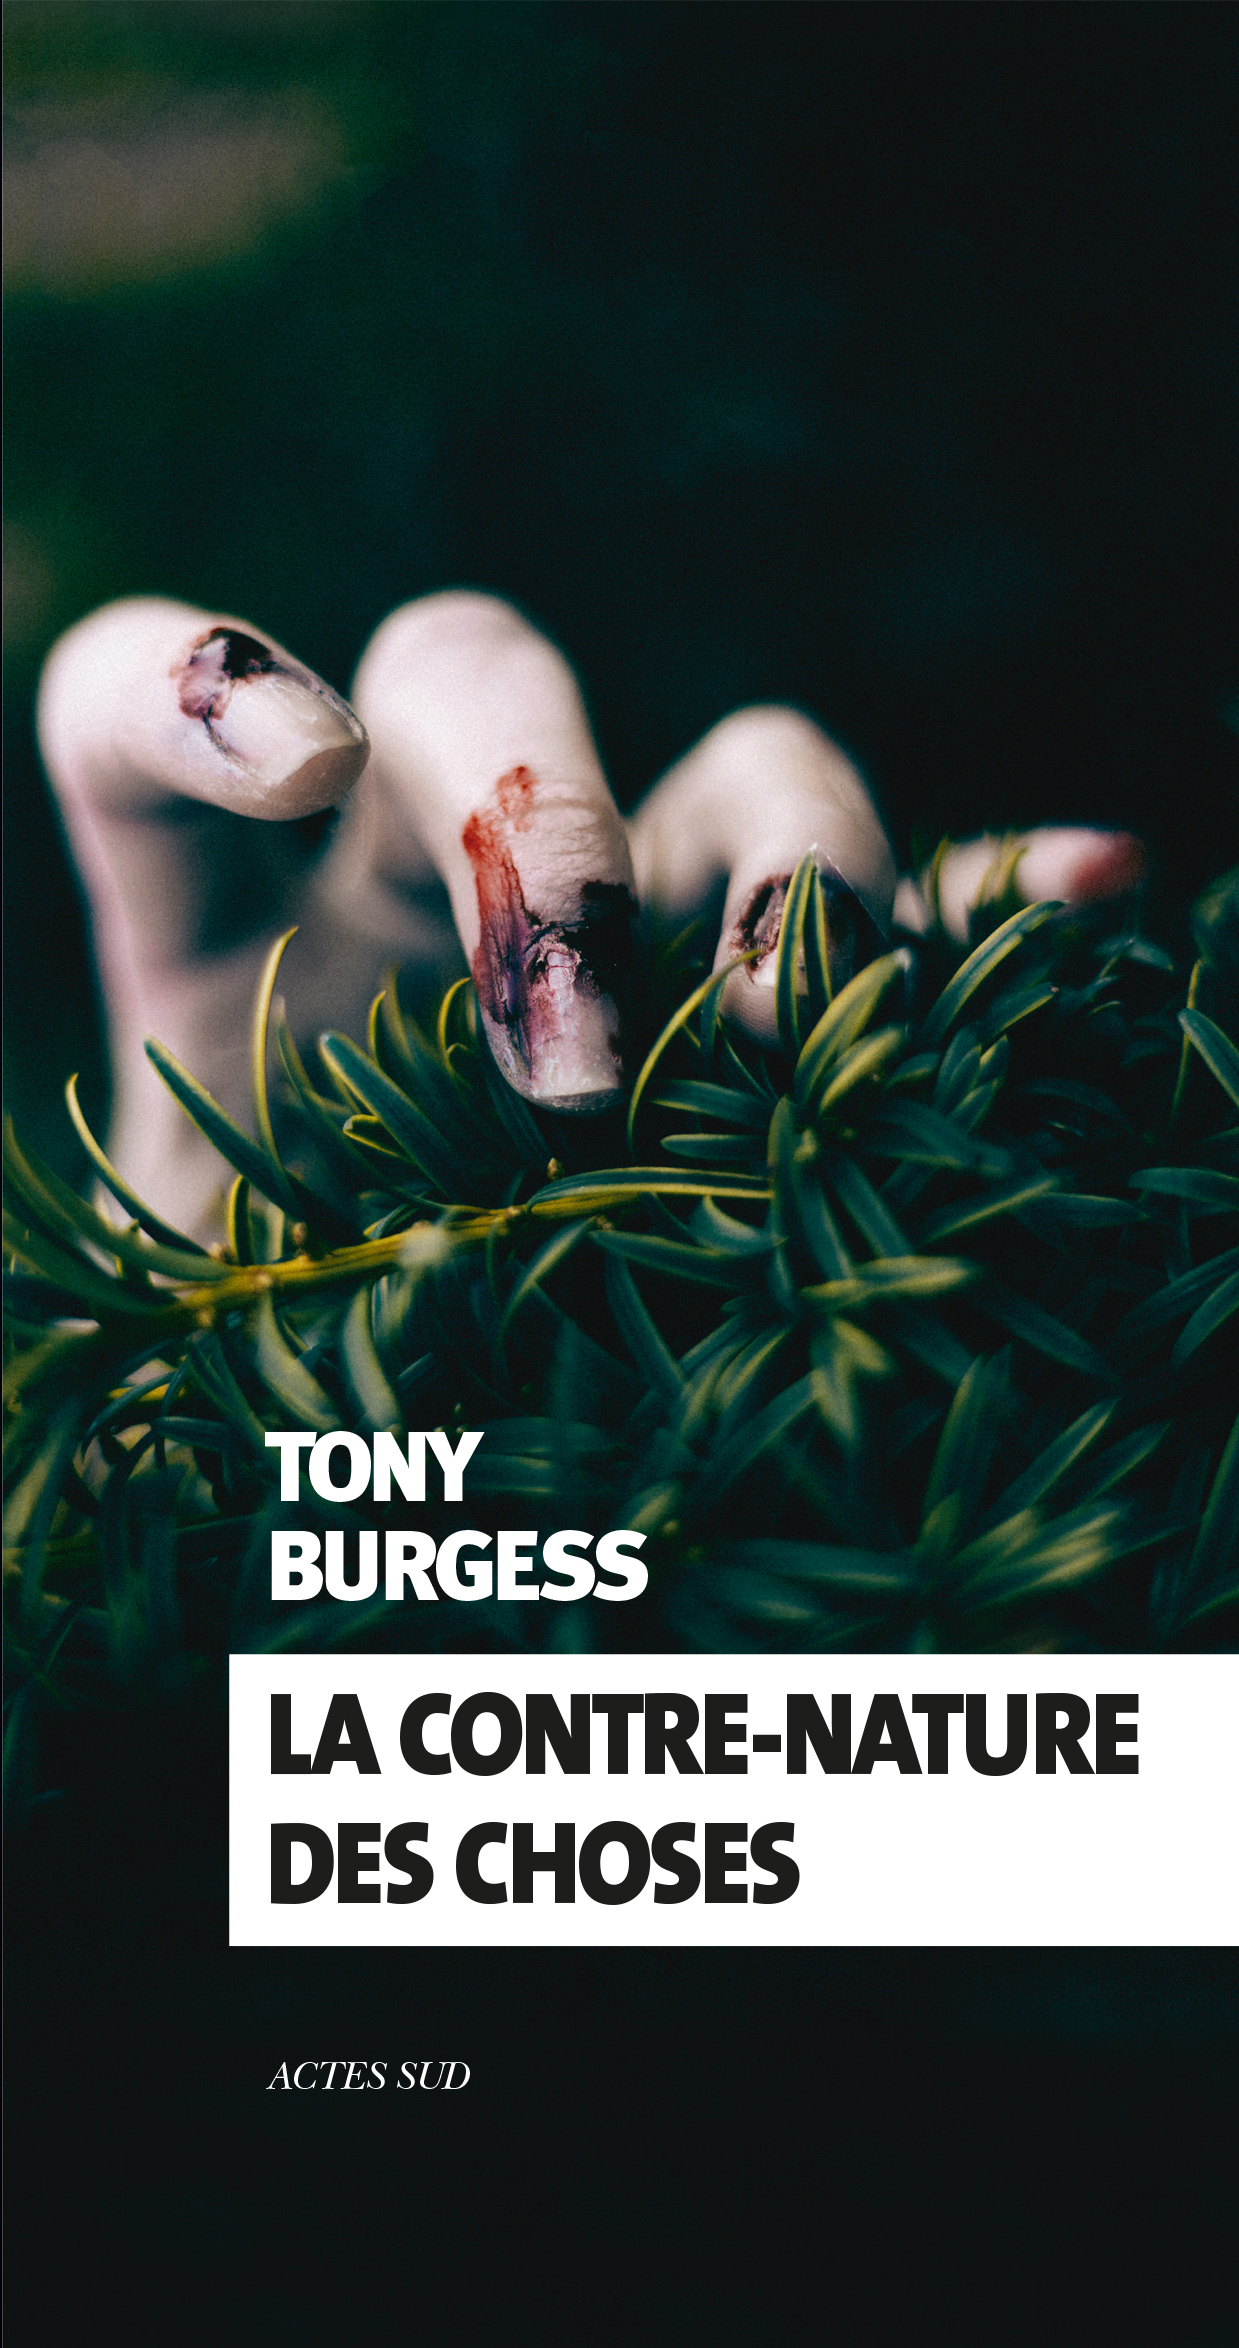 La contre-nature des choses